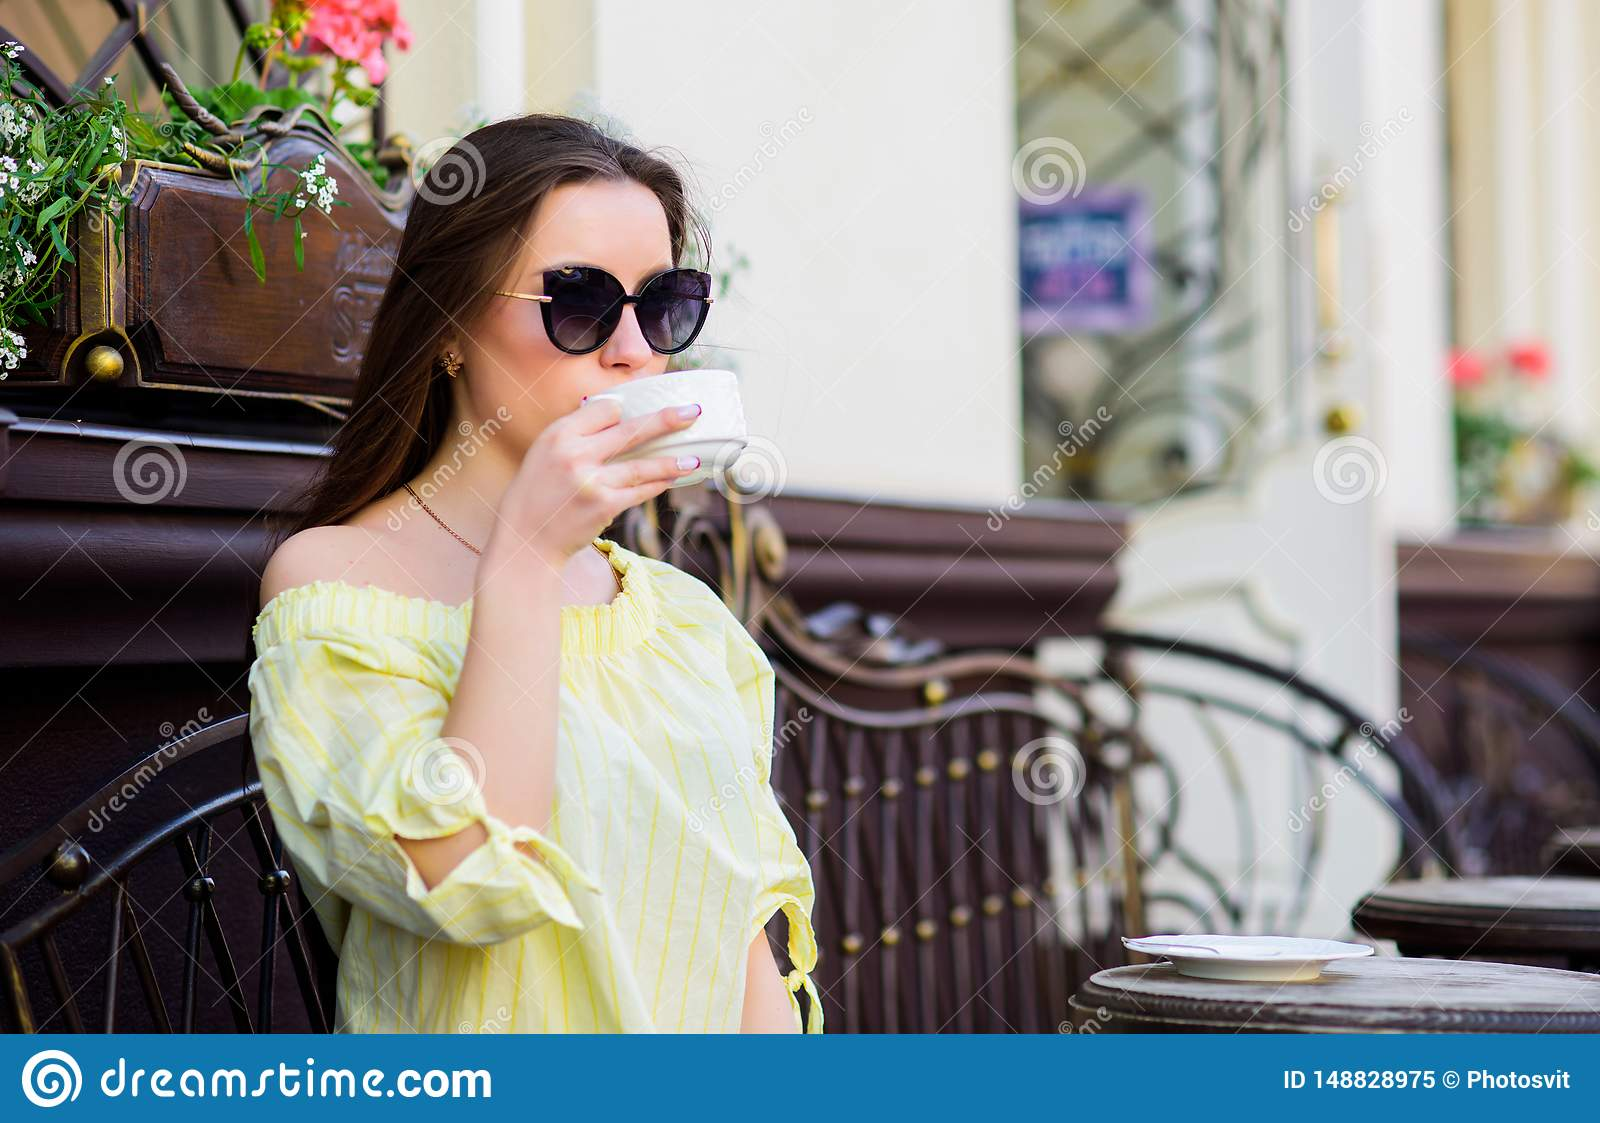 Good morning. Breakfast. girl relax in cafe. Business lunch. stylish woman in glasses drink coffee. summer fashion